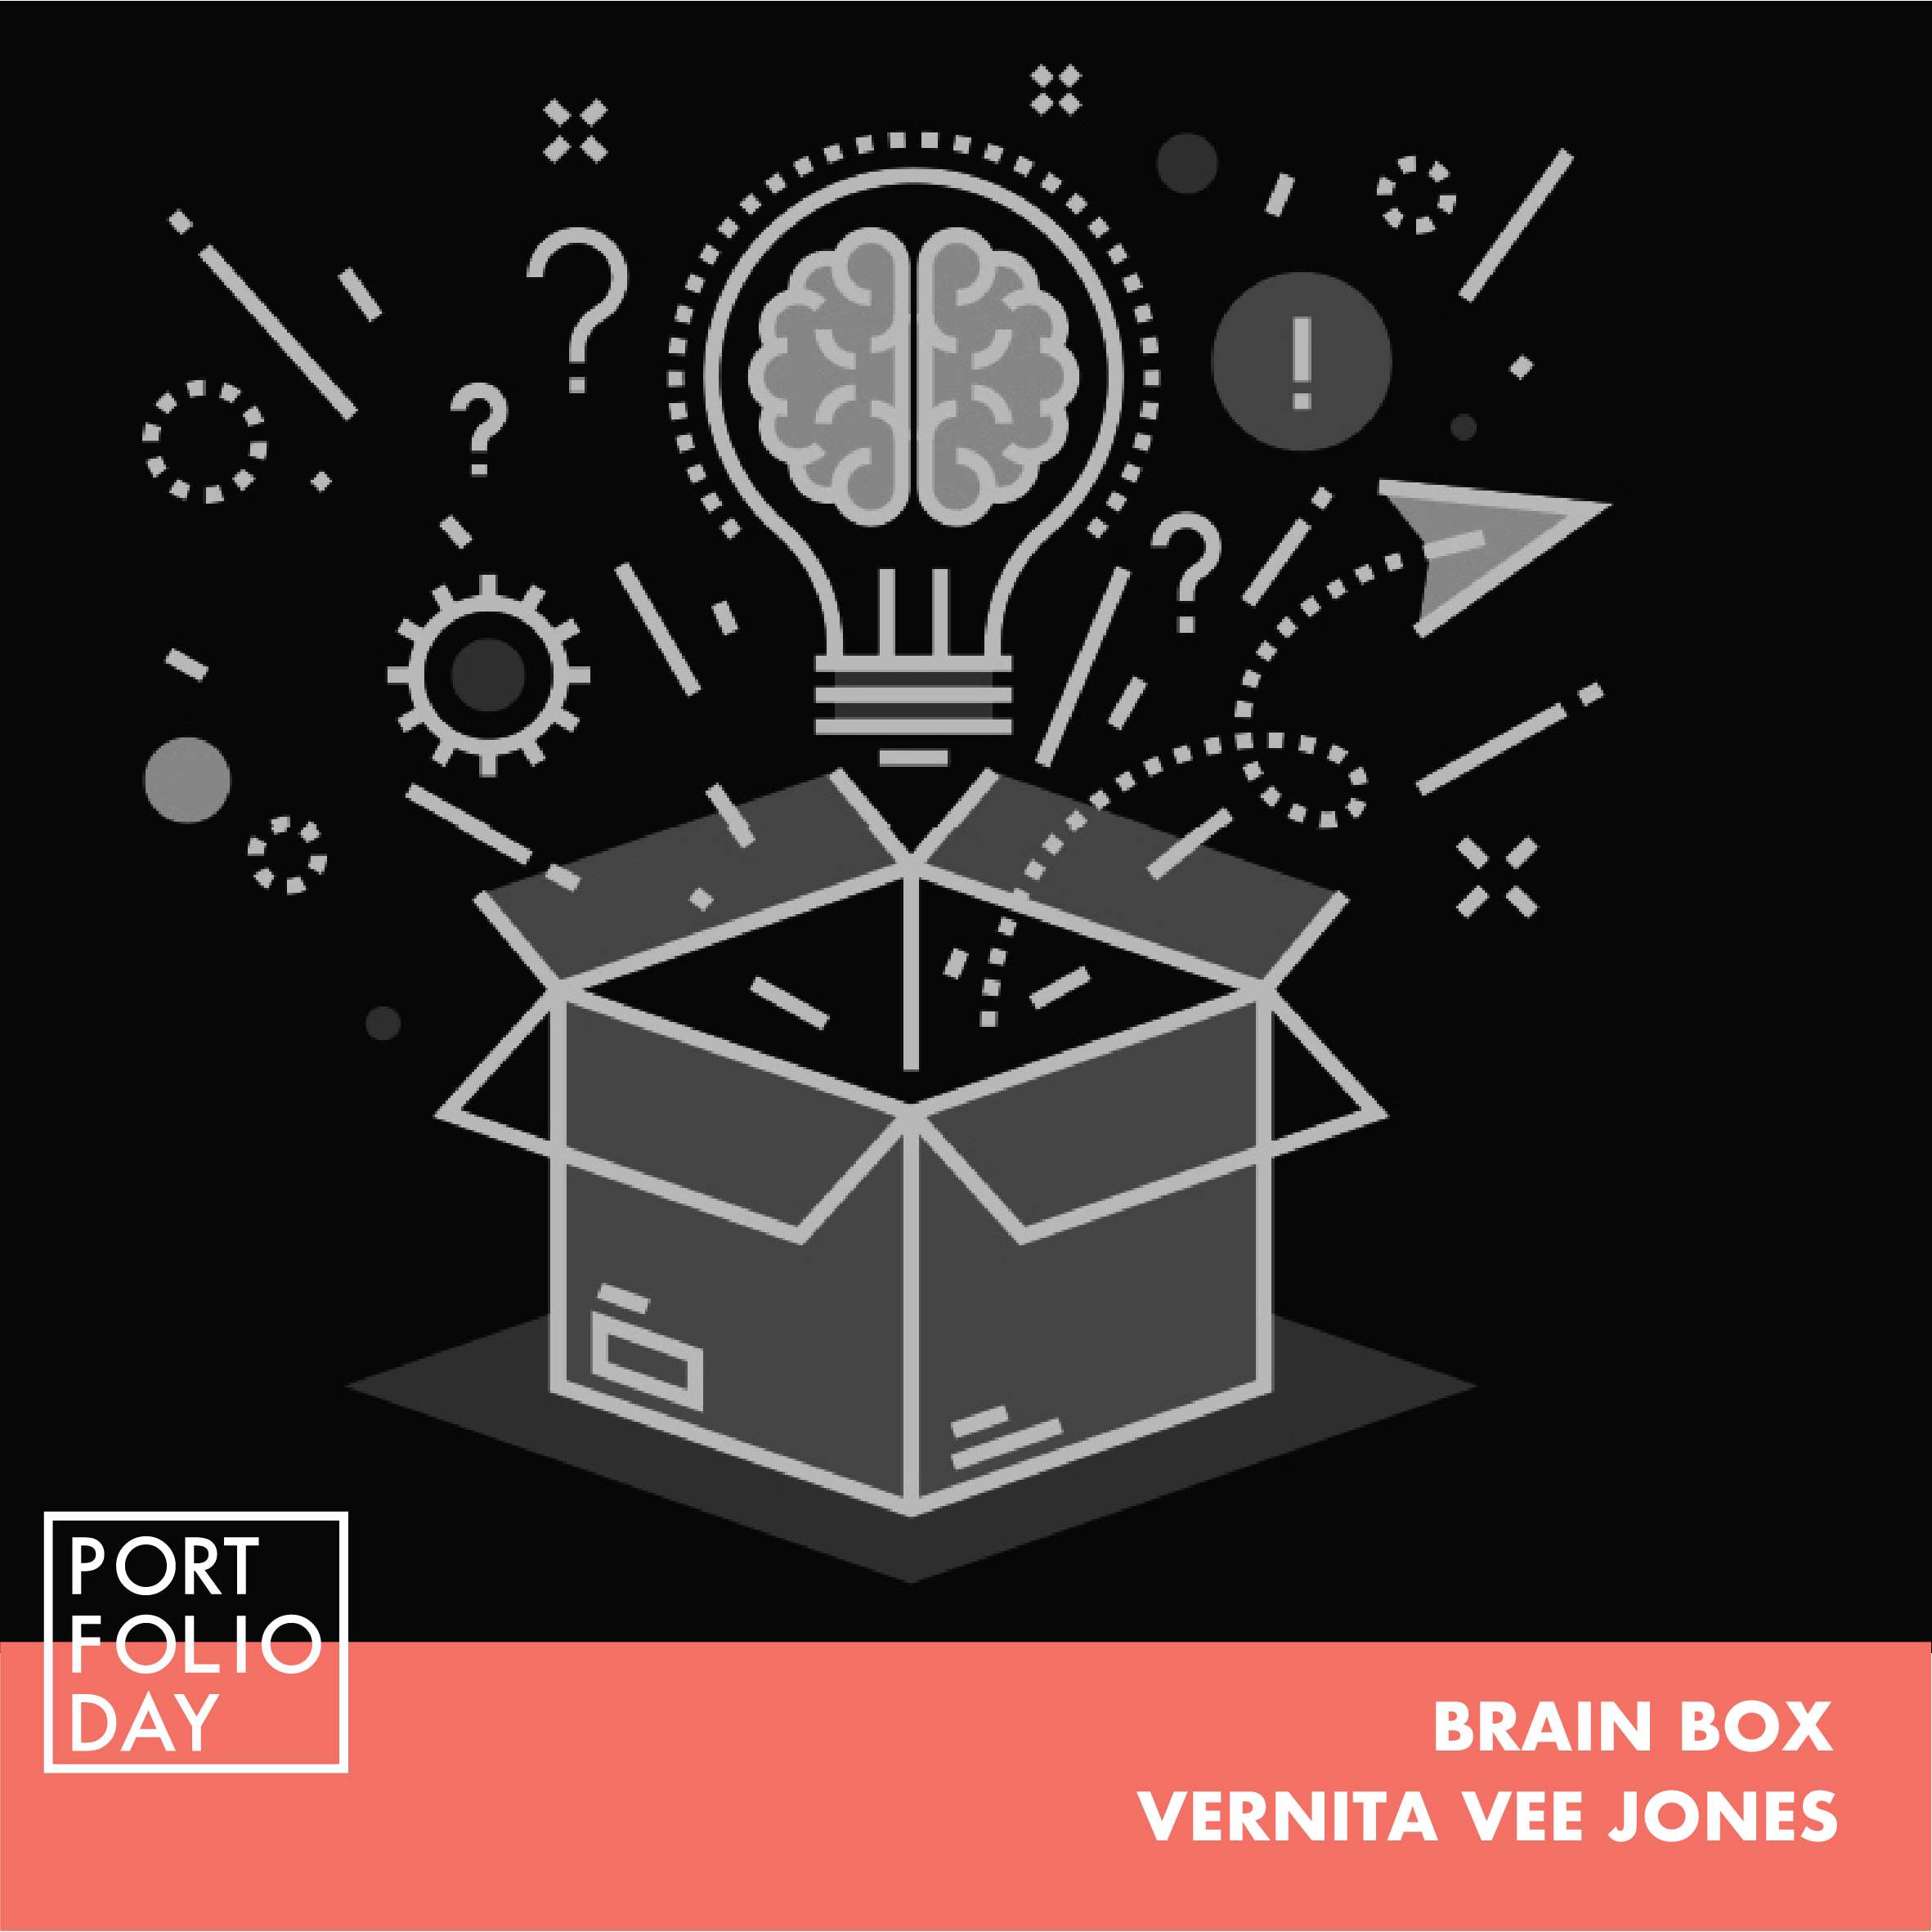 EVENT TIME: 17.00 - 18.00   Two heads are better than one. Now imagine - What could you achieve with a room filled with ideas? Brain box gives you the opportunity to share ideas with an international team with experiences in finance, marketing, product development, psychology, and design.  Vernita is a marketing professional from South Africa who has a keen interest in sustainable development. She is a qualified financial adviser as well as a Neuro-Linguistic Programming practitioner.